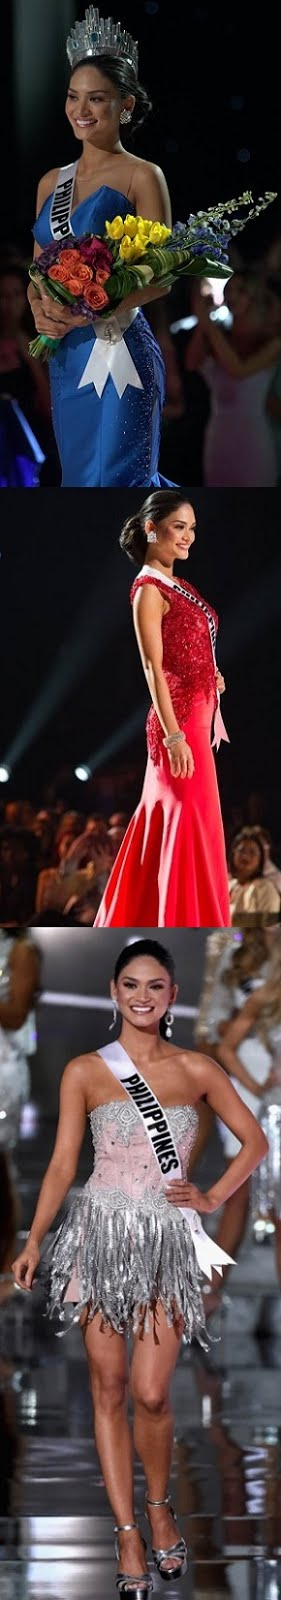 HISTORIC  WIN, IN 42 YEARS, FOR  PHILIPPINES  IN  MISS  UNIVERSE  TILT!